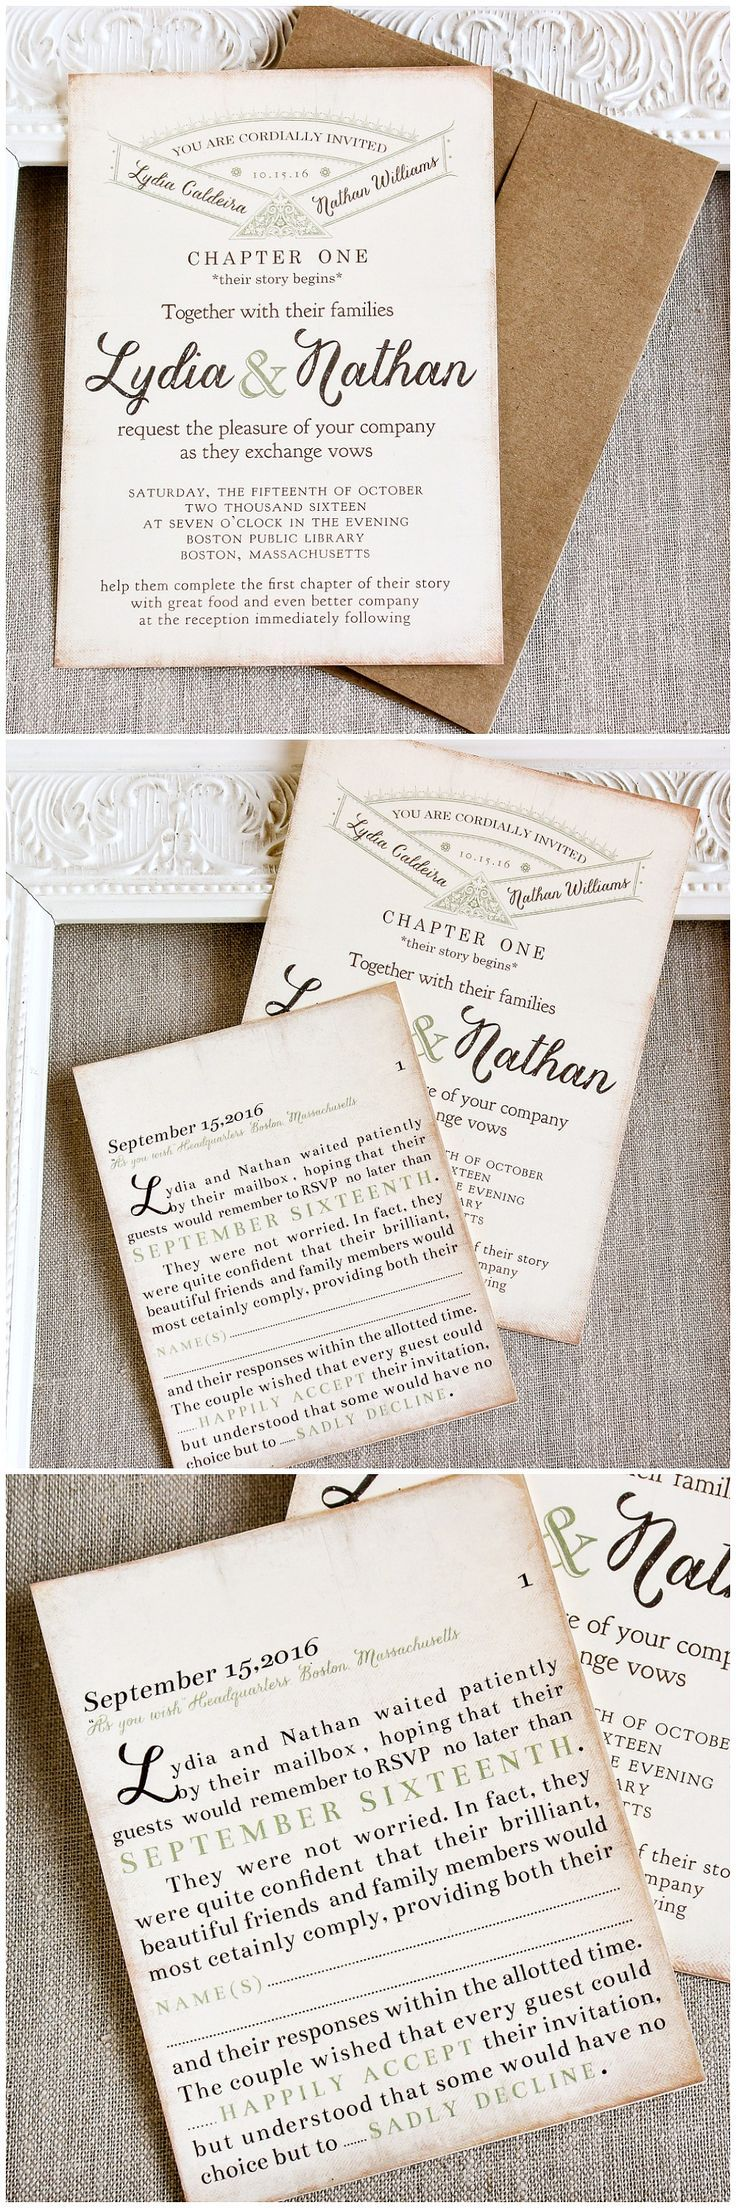 Vintage Story Book Wedding Invitation Library Books Literary As You Wish The Princess Bride